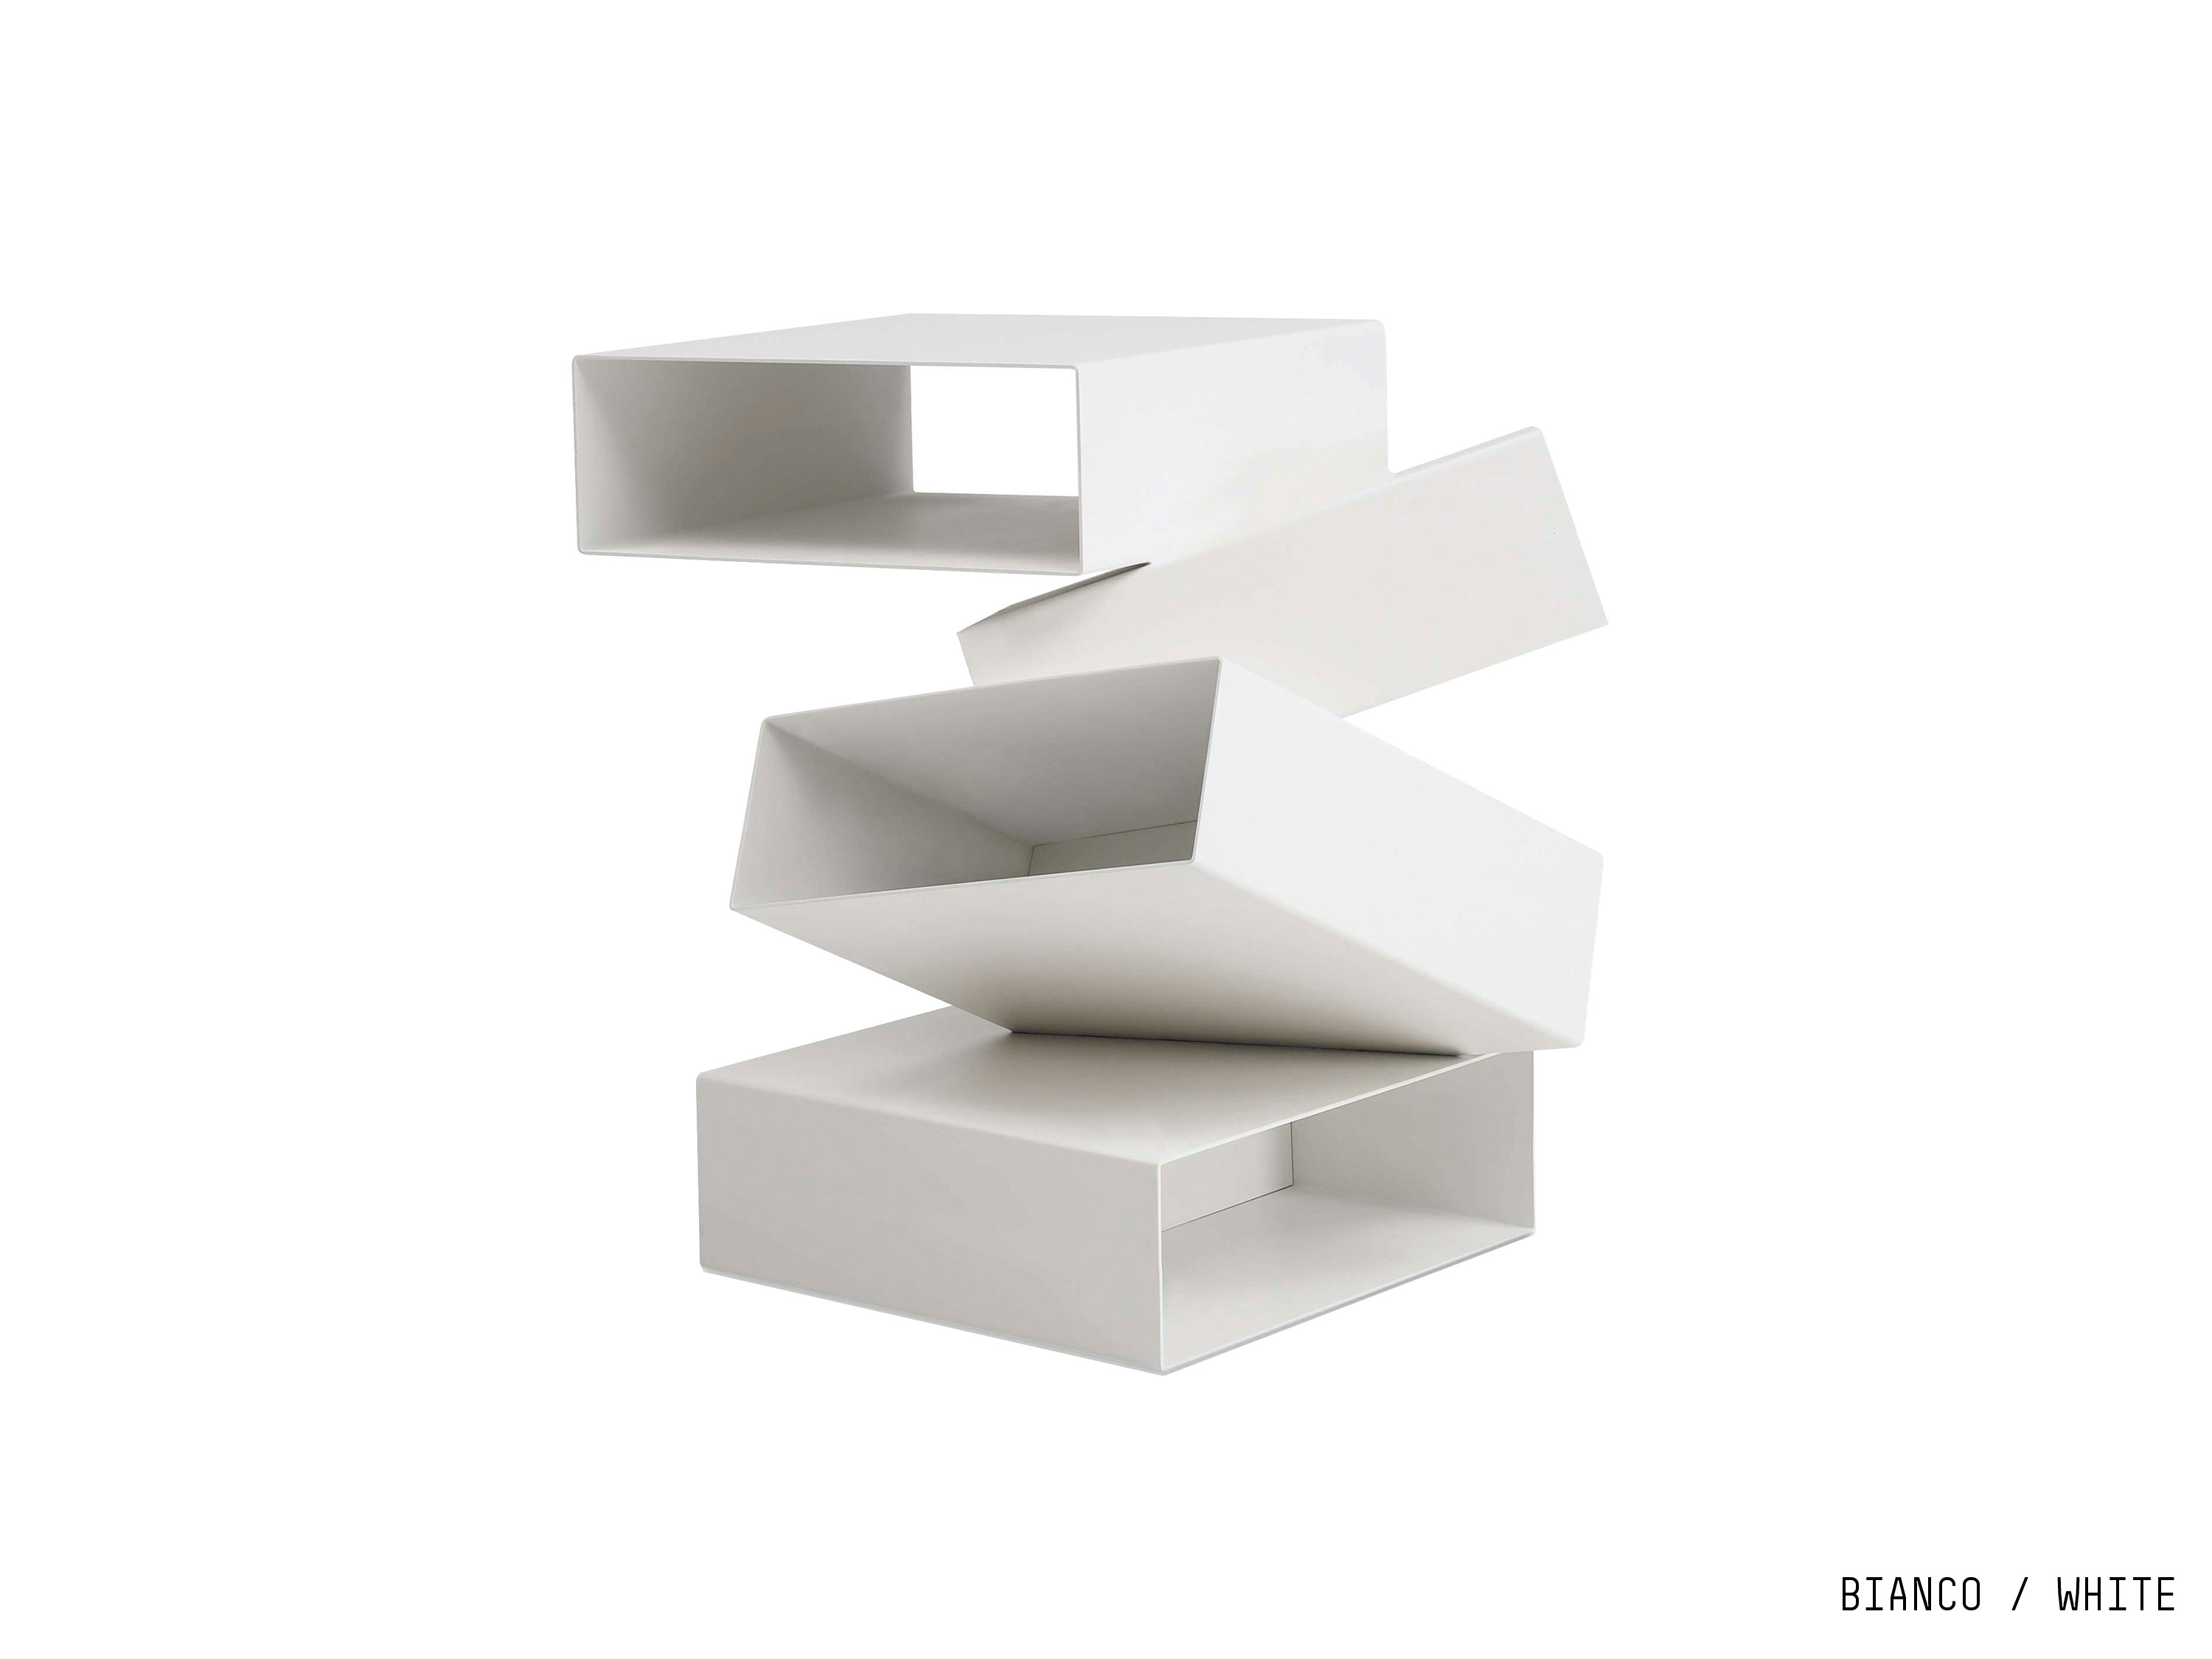 Porro Spa Products Collections Balancing Boxes